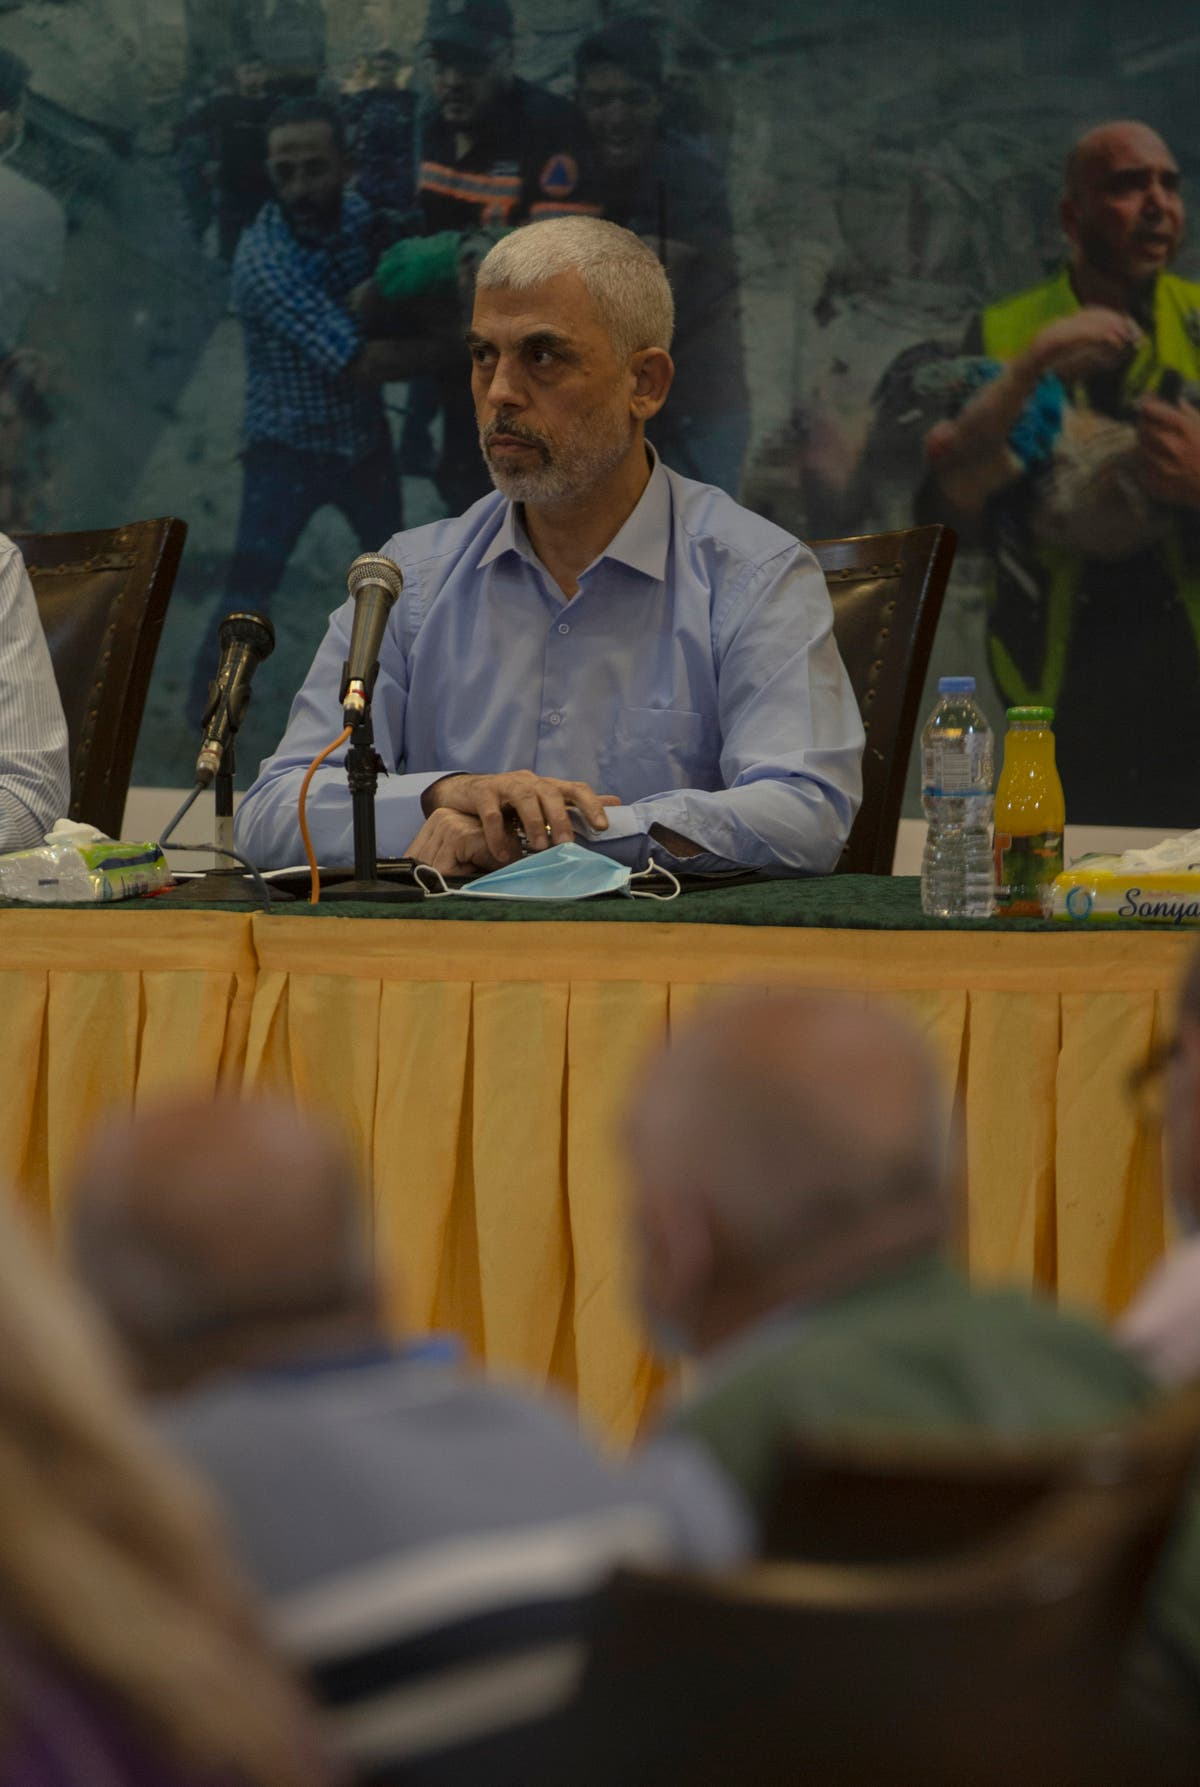 Hamas leader says 80 fighters killed in war with Israel